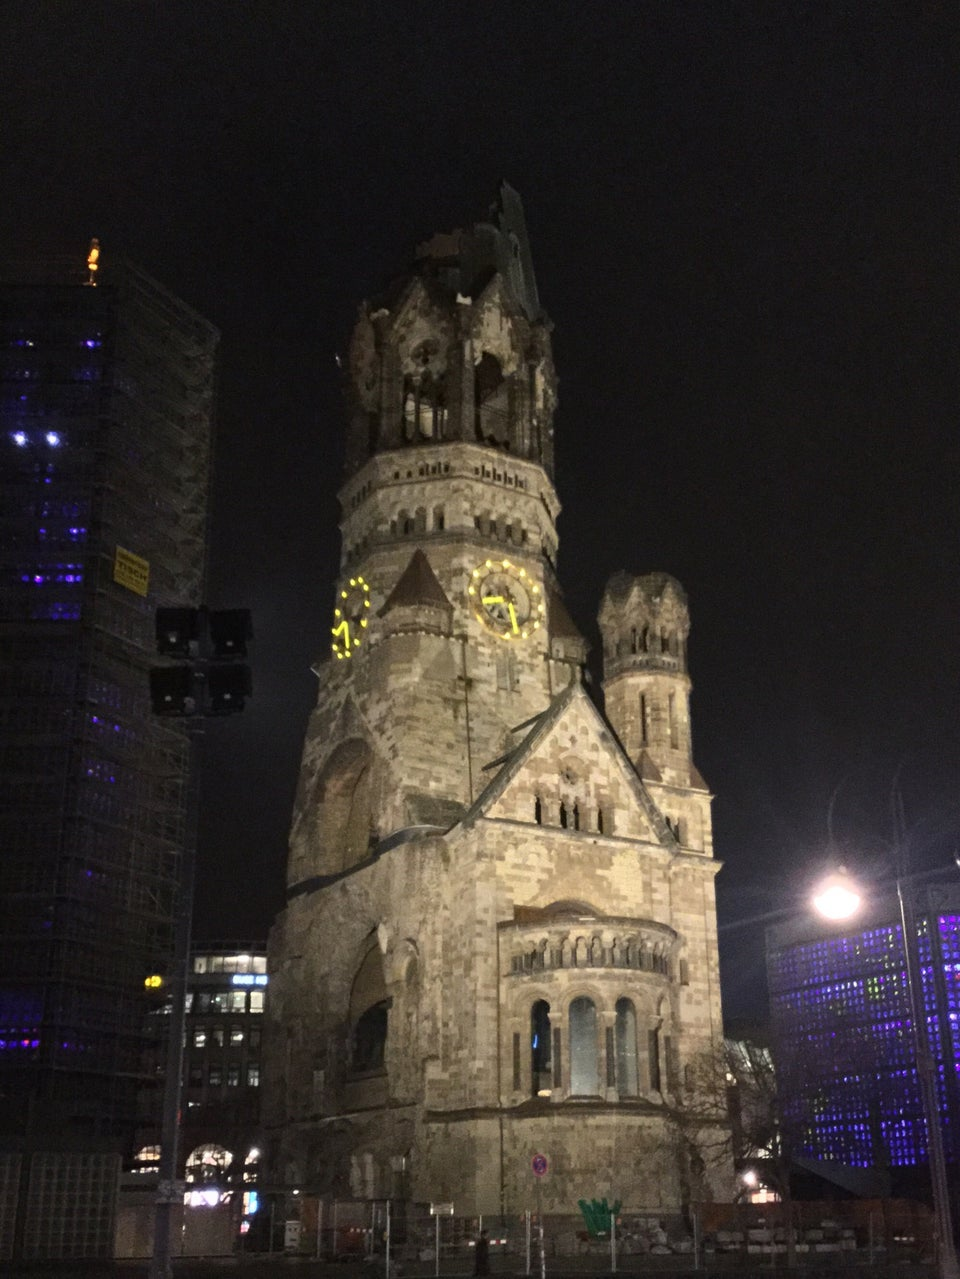 A old church with a severely damaged spire at night, with a light-up clock on it, with modern buildings with lights on both sides.